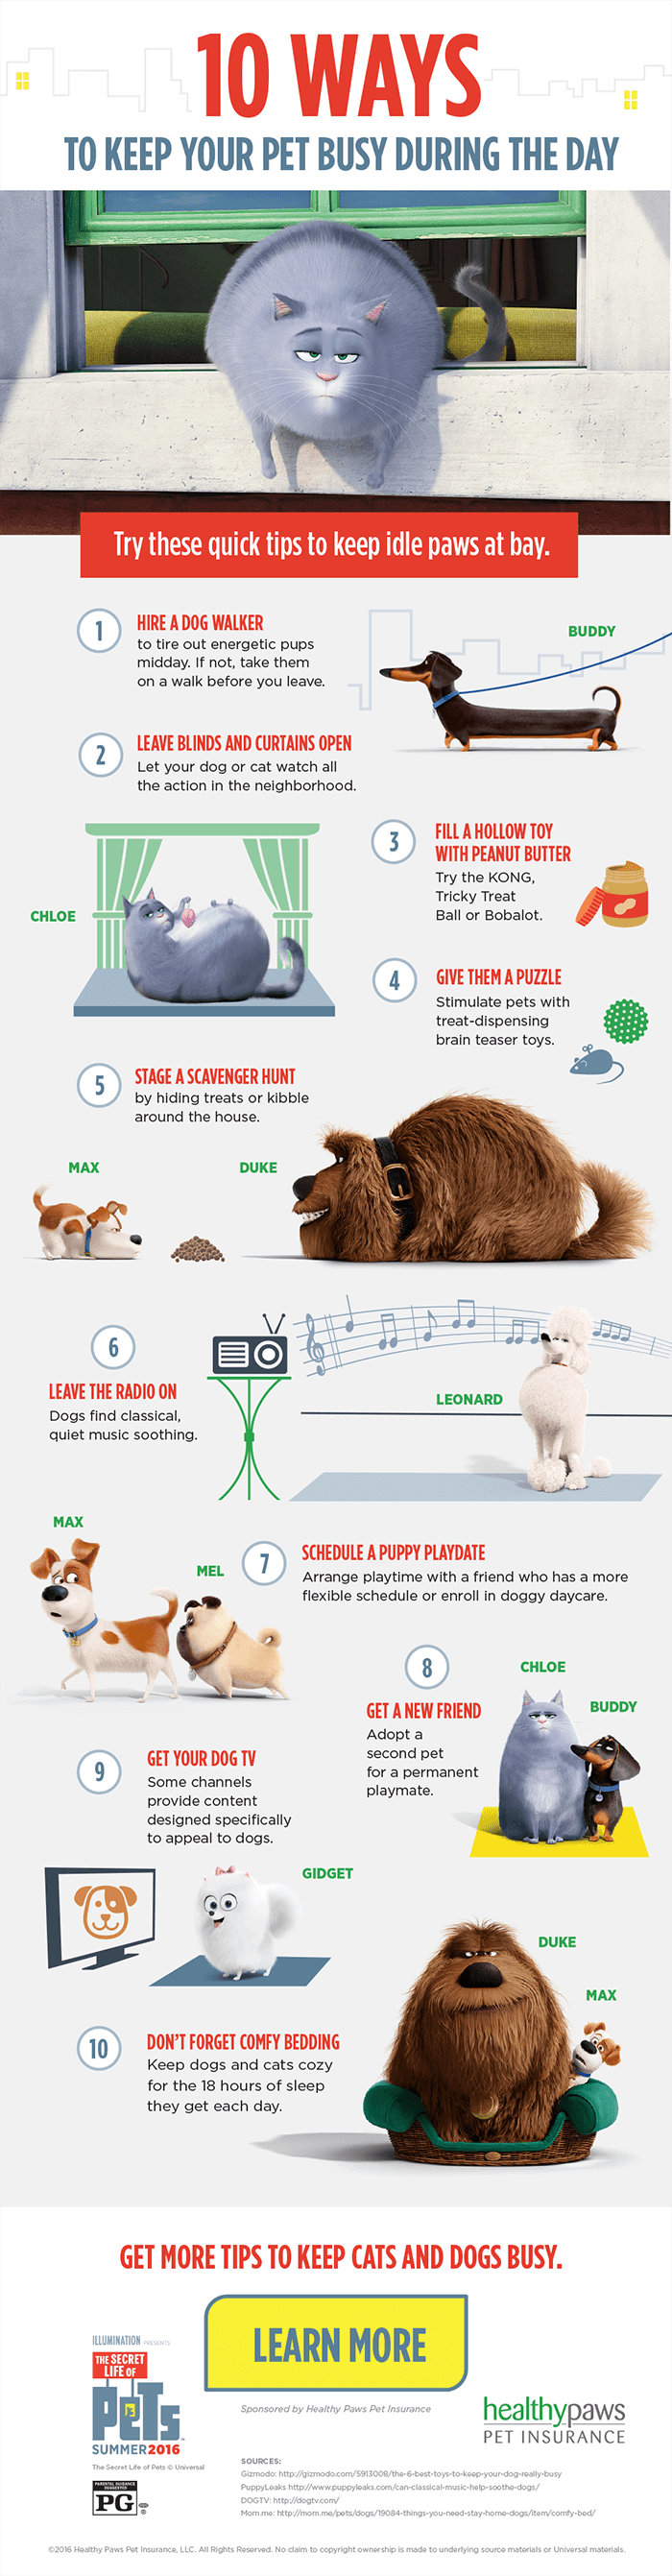 10-Ways-to-Keep-Pets-Busy